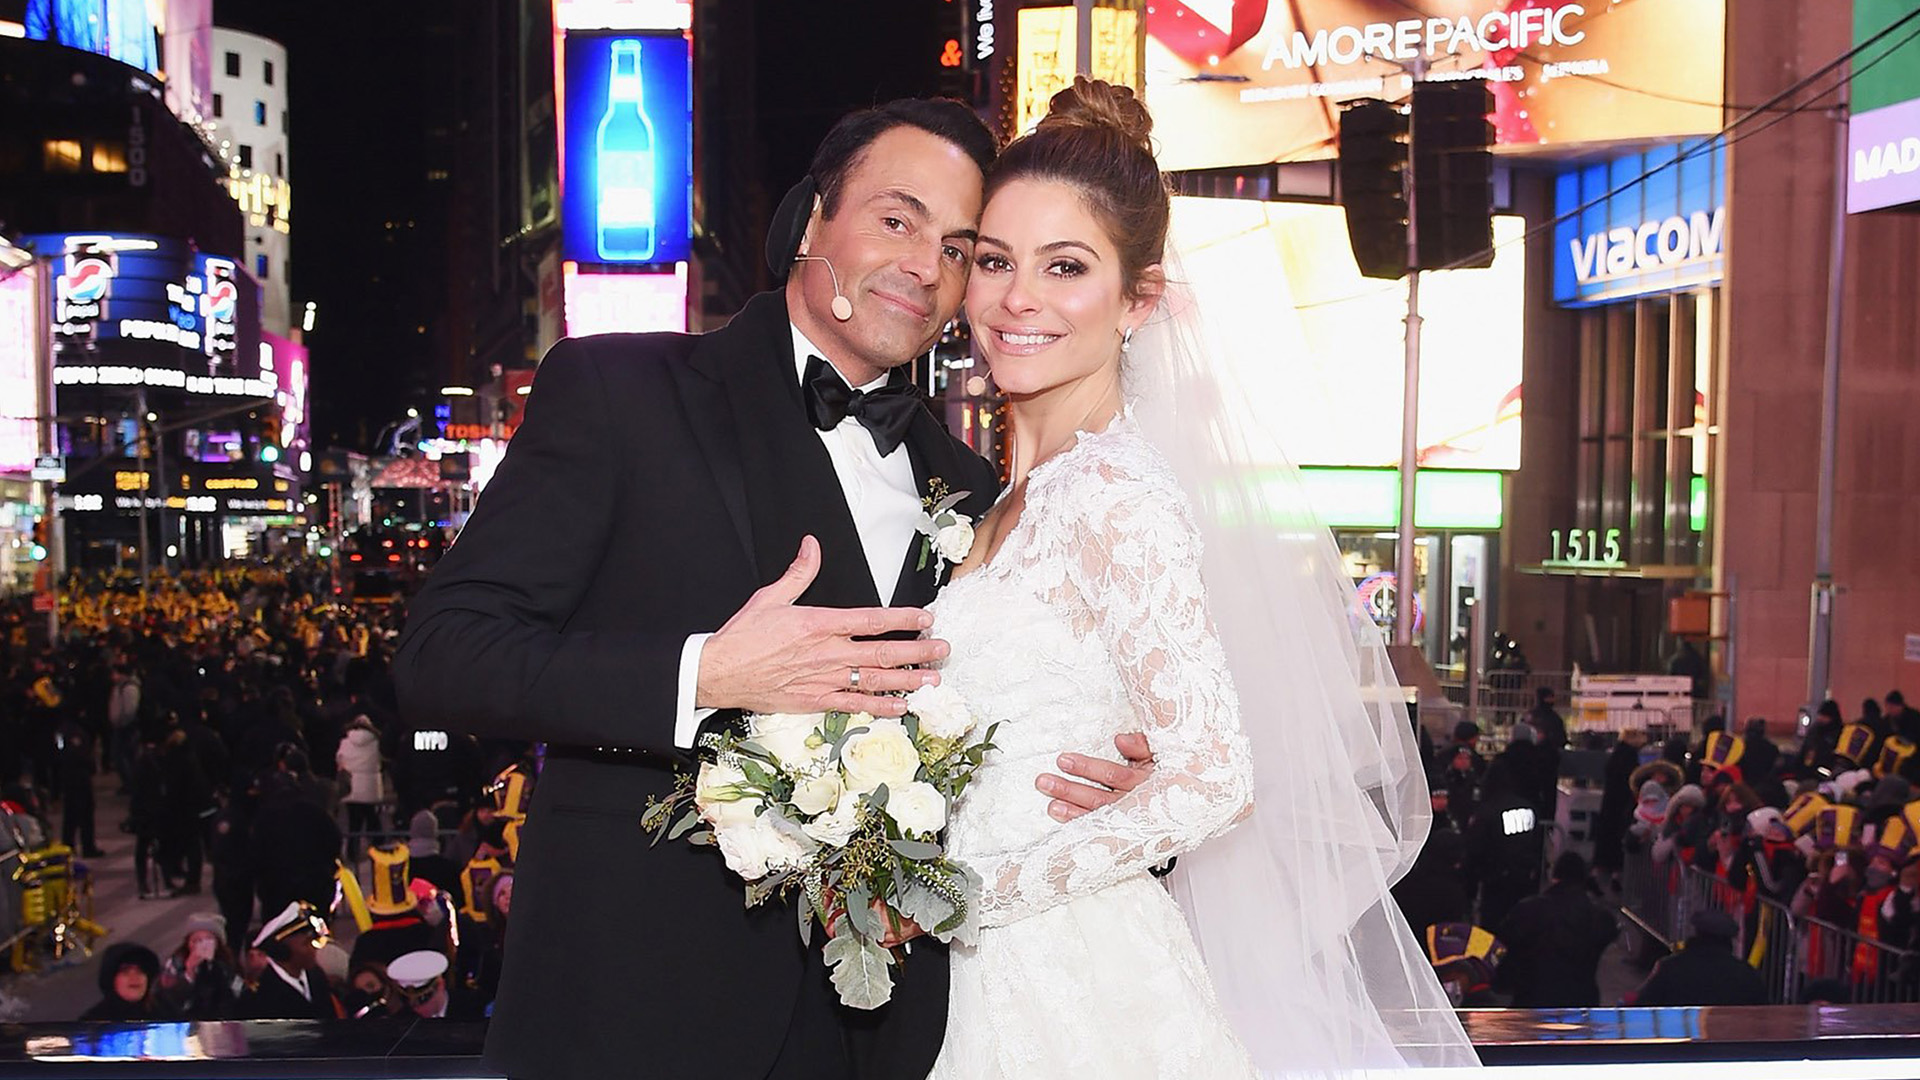 Maria Menounos Marries On Live TV In Surprise Wedding On